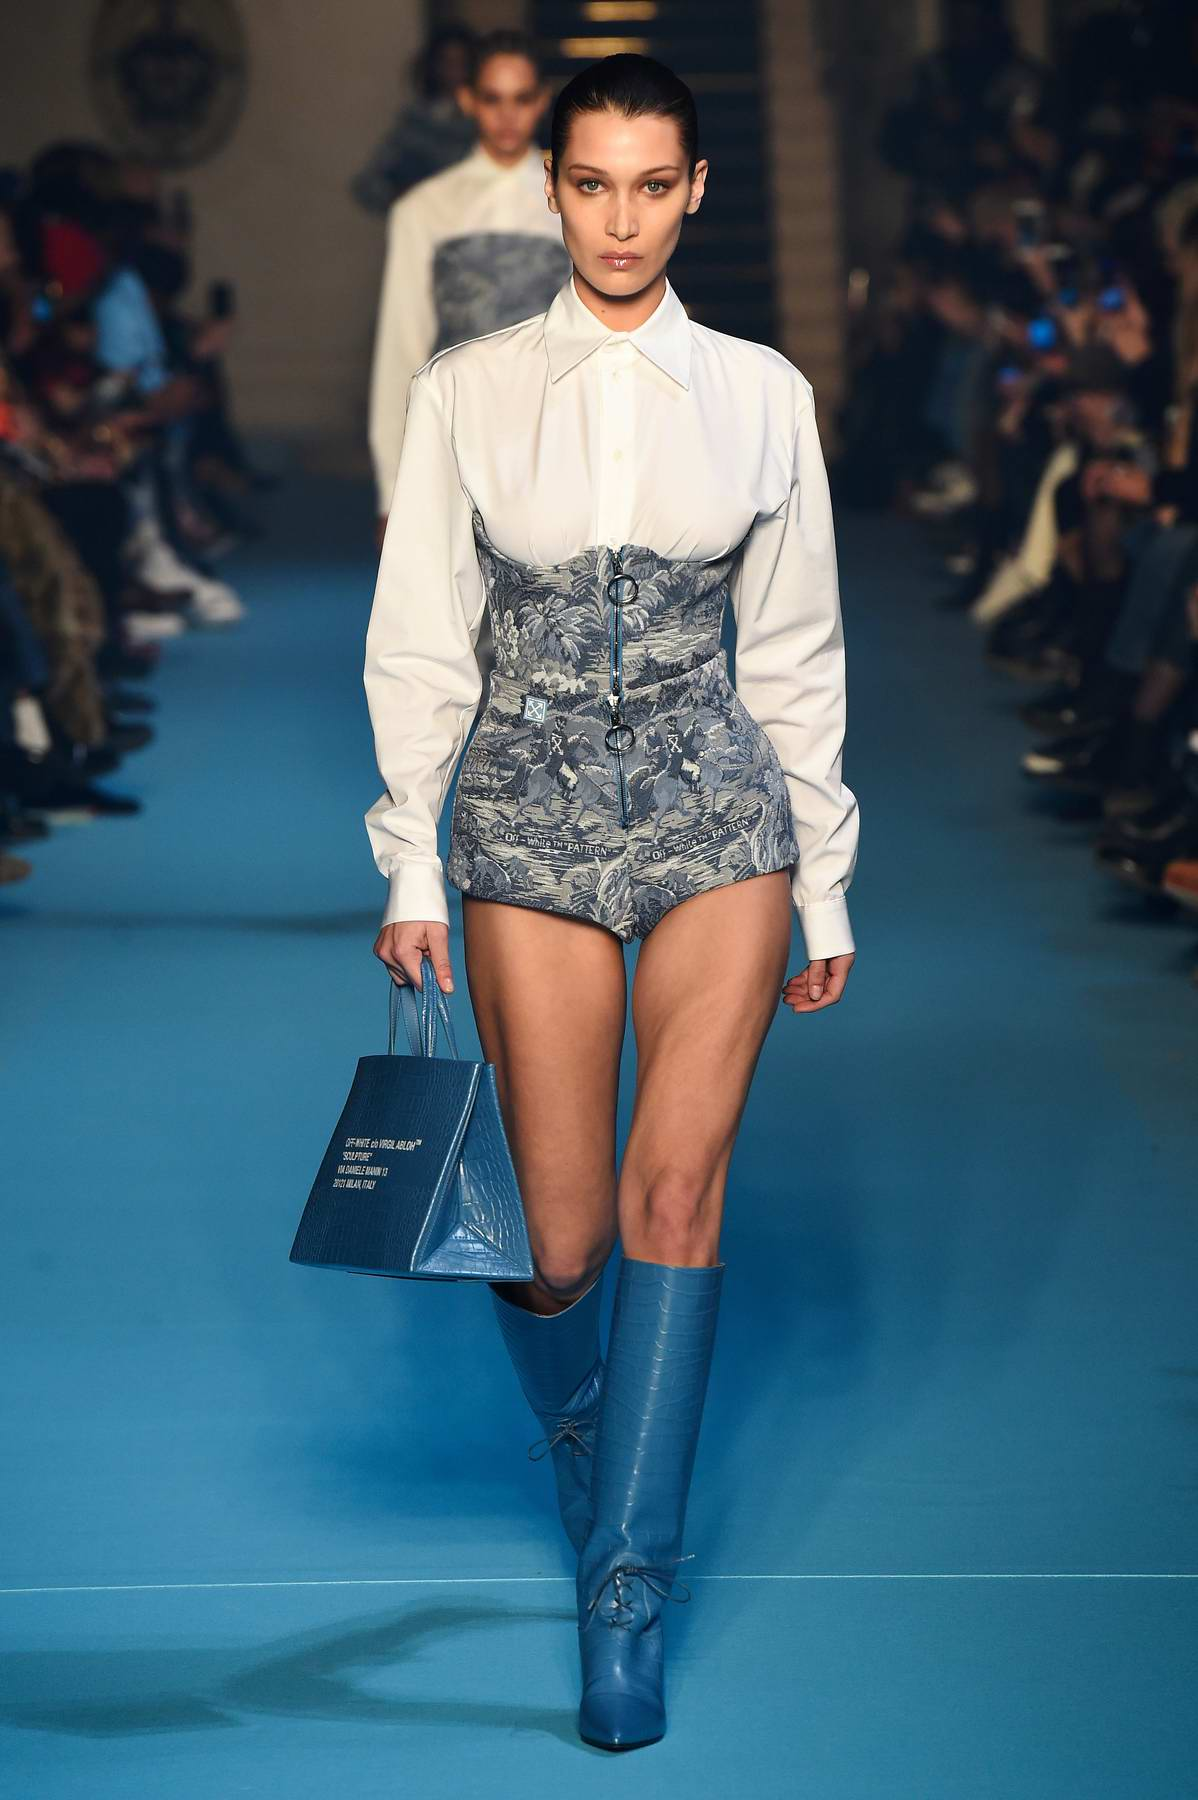 Bella Hadid walks for the Off-White Show, Fall Winter 2018-19 during Paris Fashion Week, France